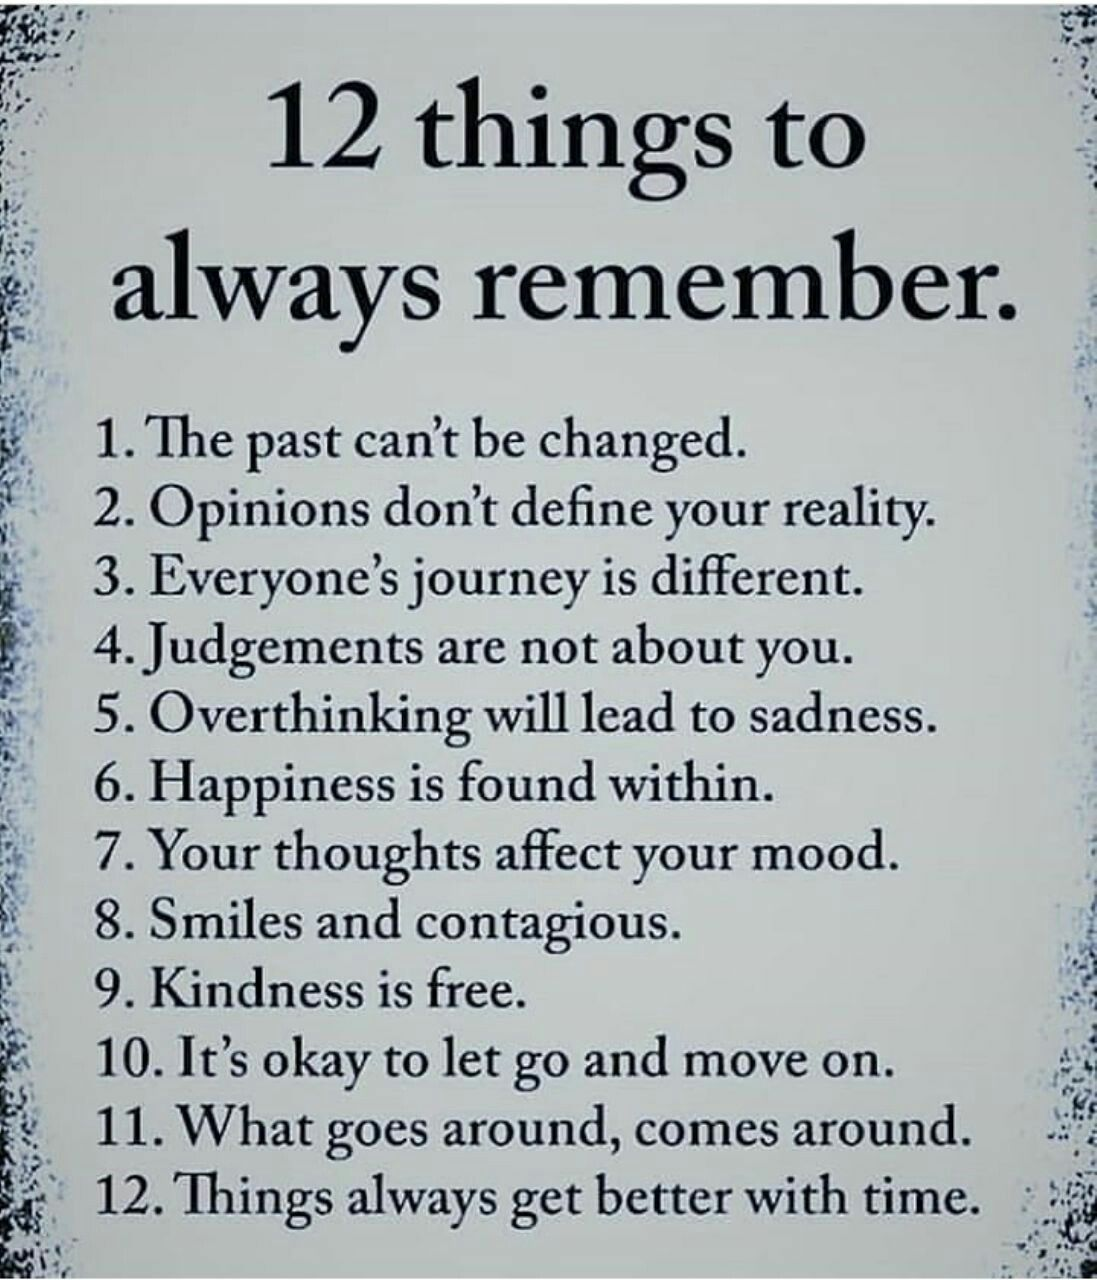 Pin by sreevenireddy on Positive & Inspiring quotes